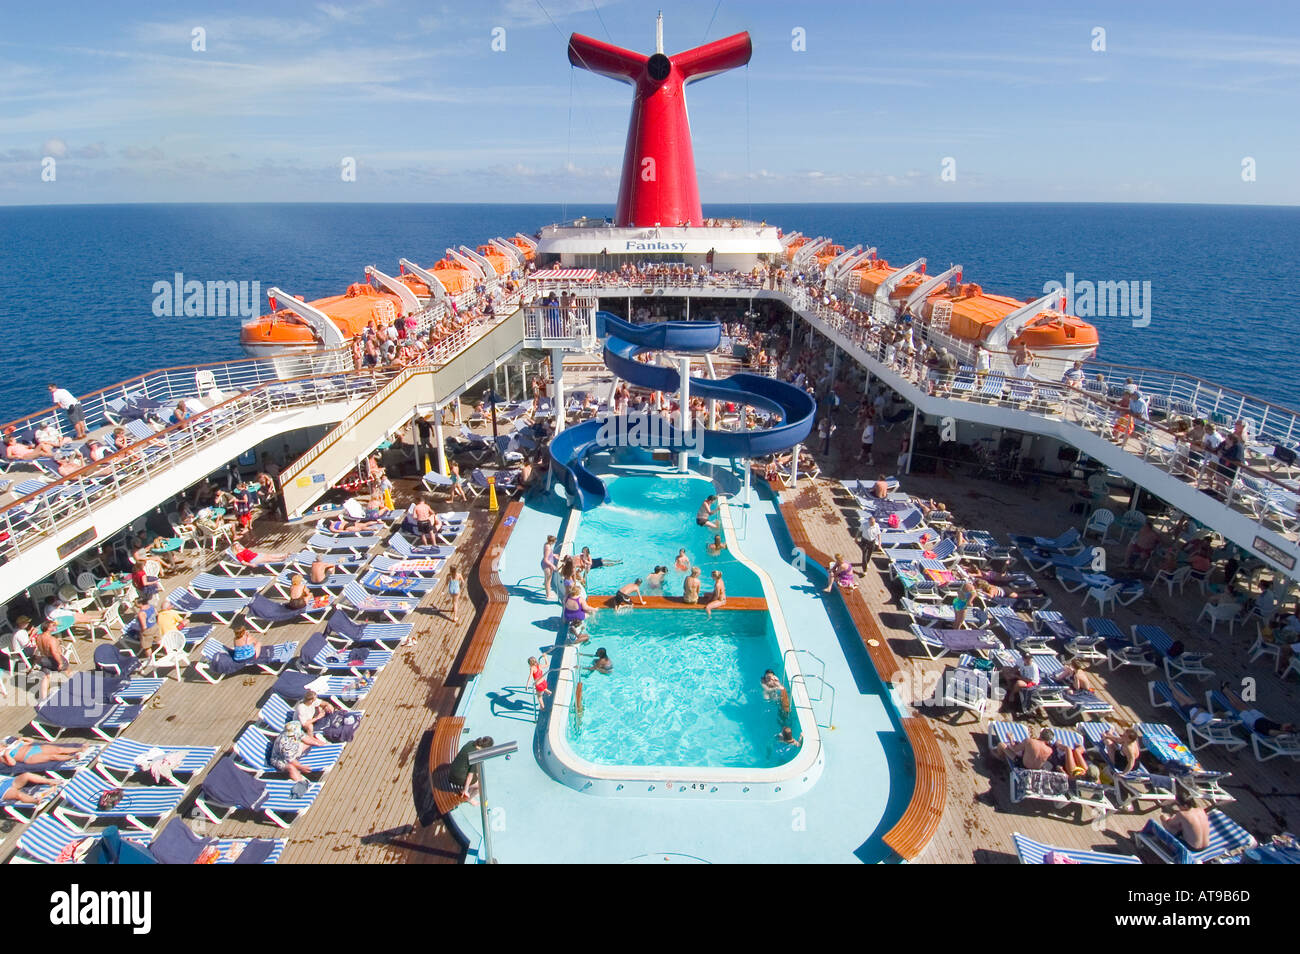 Family Activities Aboard The Carnival Cruise Ship Fantasy From Port Stock Photo 1678188 Alamy